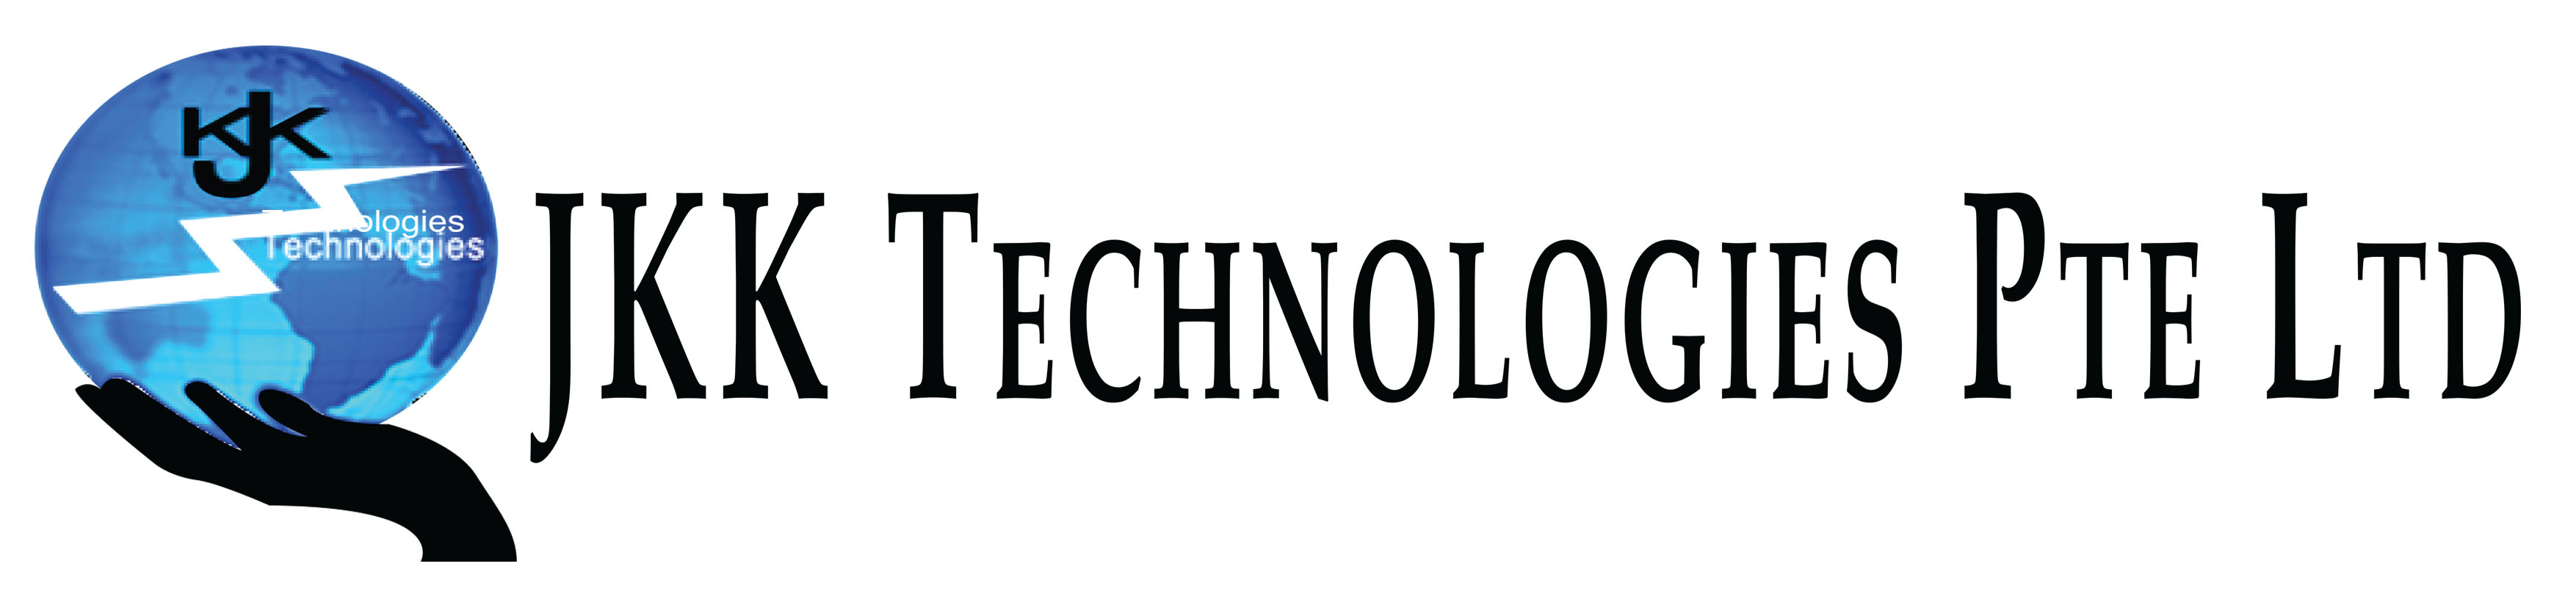 JKK TECHNOLOGIES PTE LTD